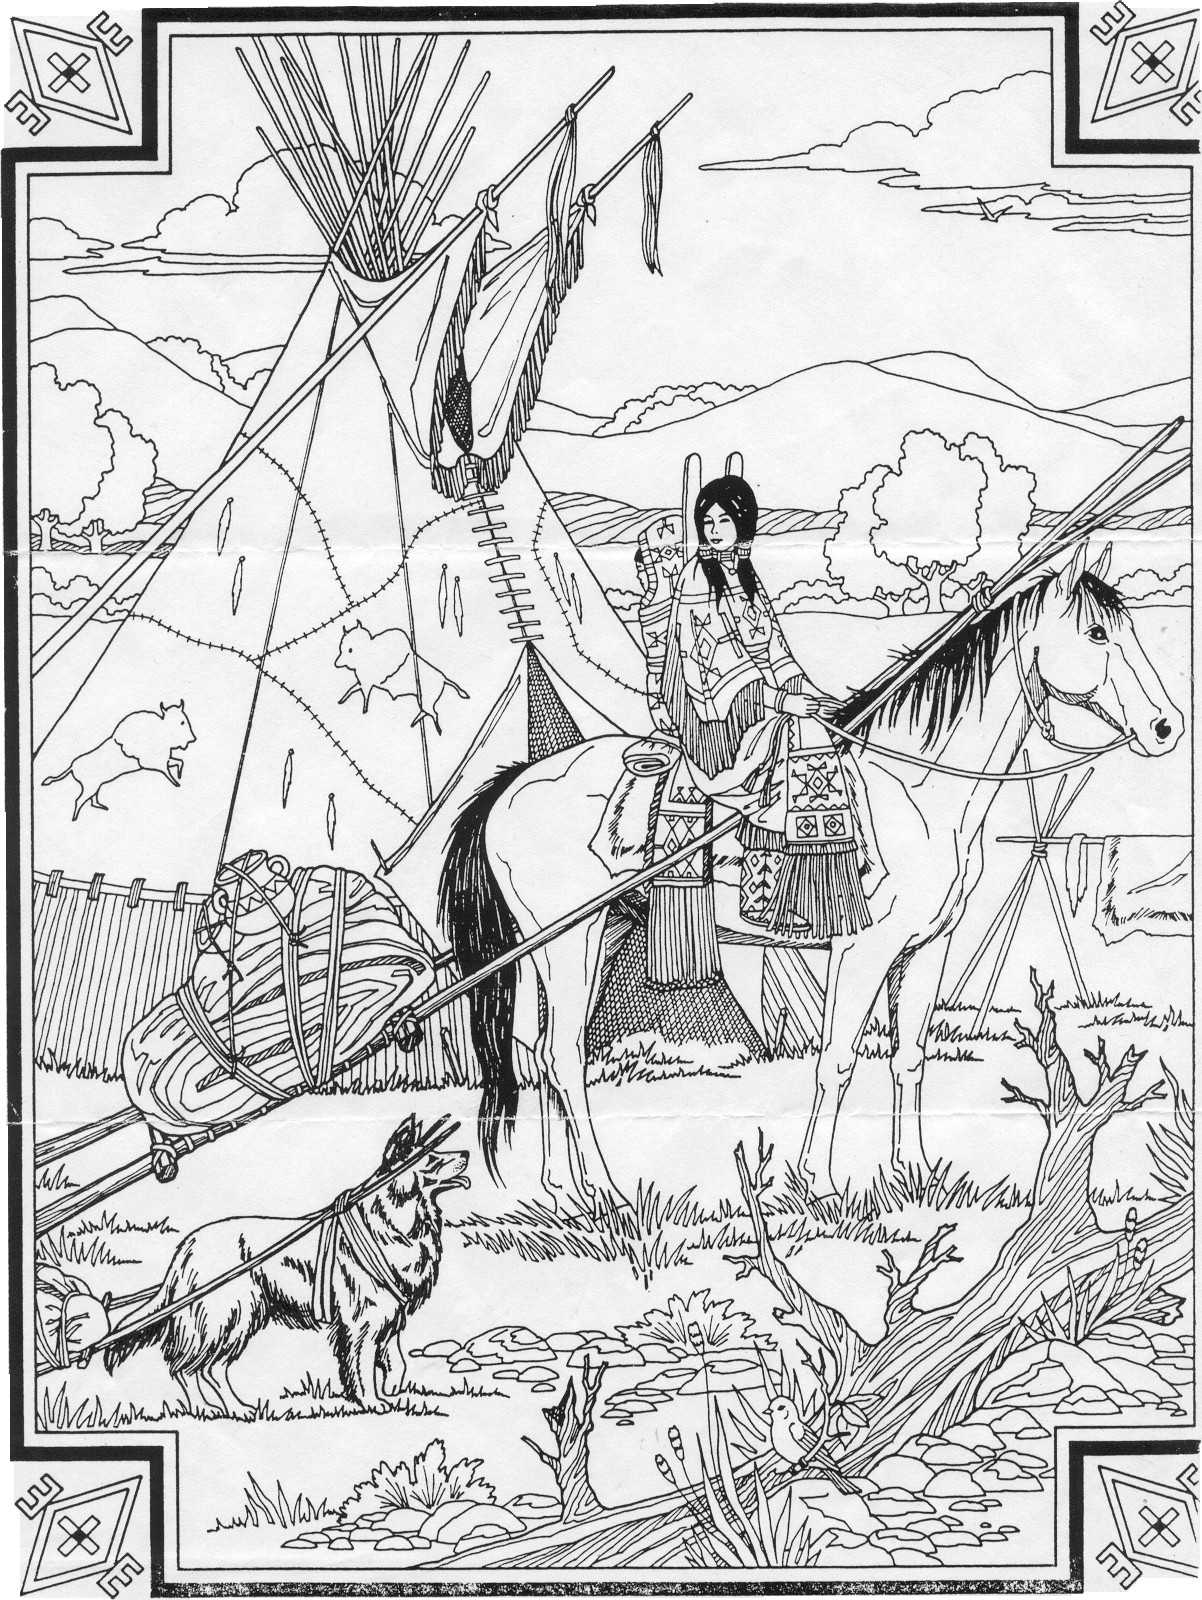 indian coloring page indian native chief profile native american adult coloring page indian